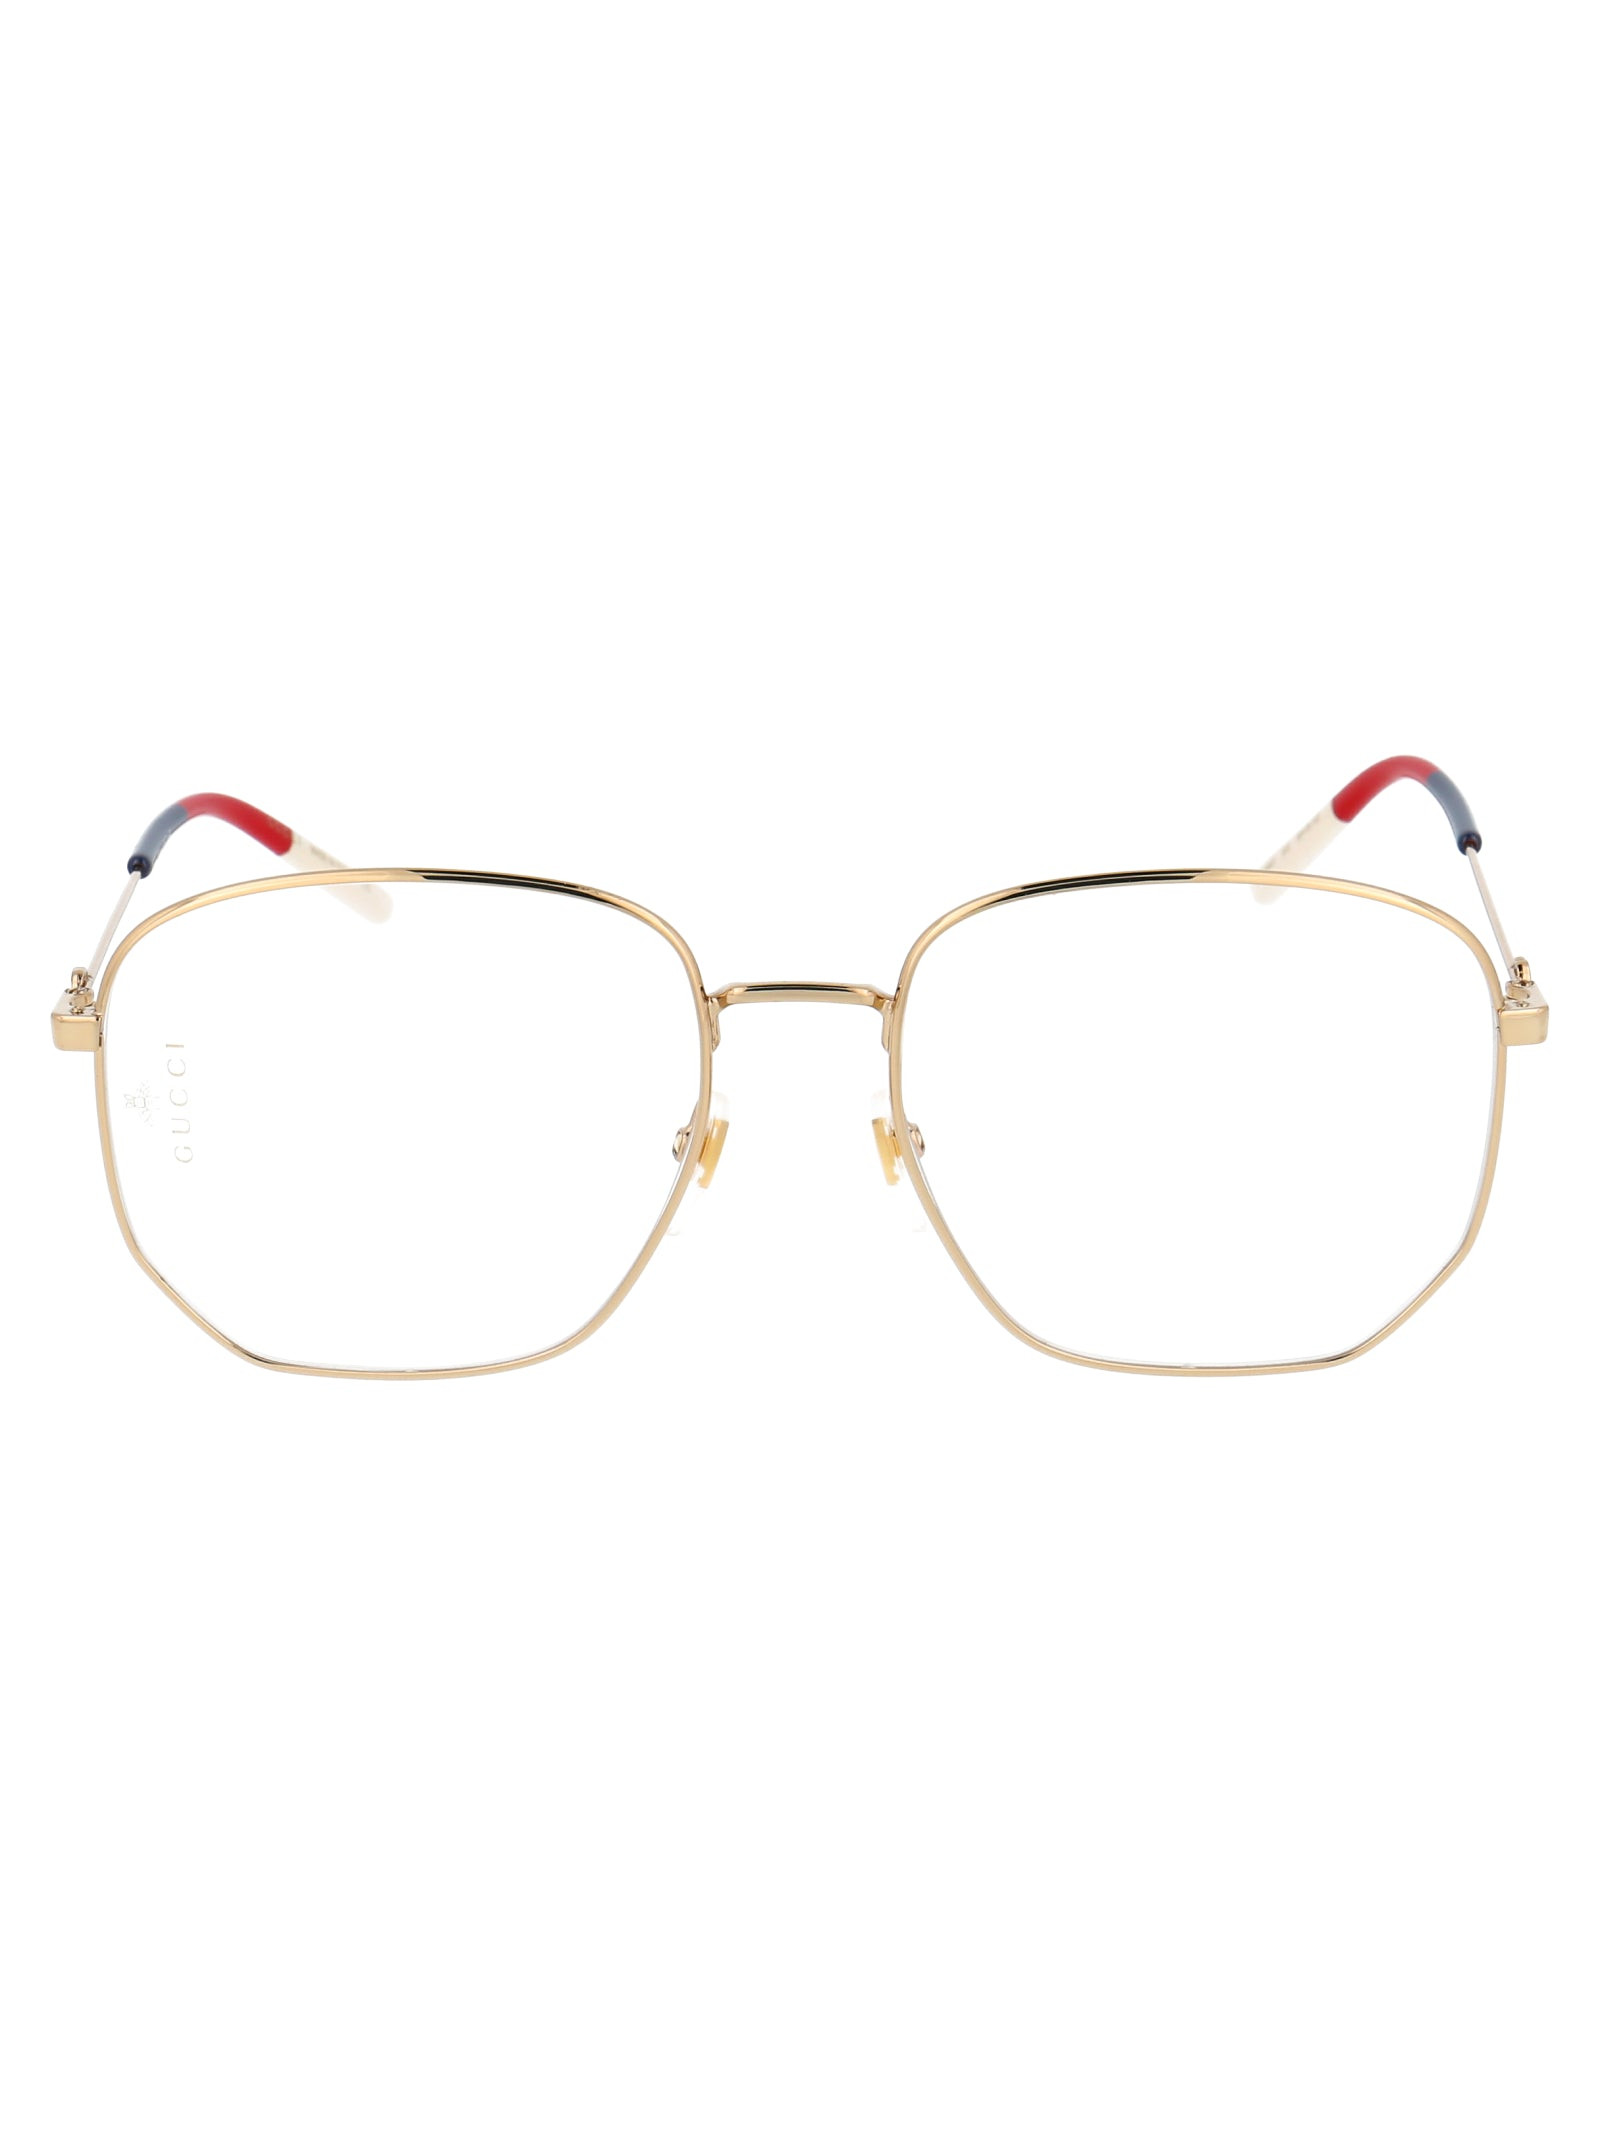 GUCCI EYEWEAR OPTICAL